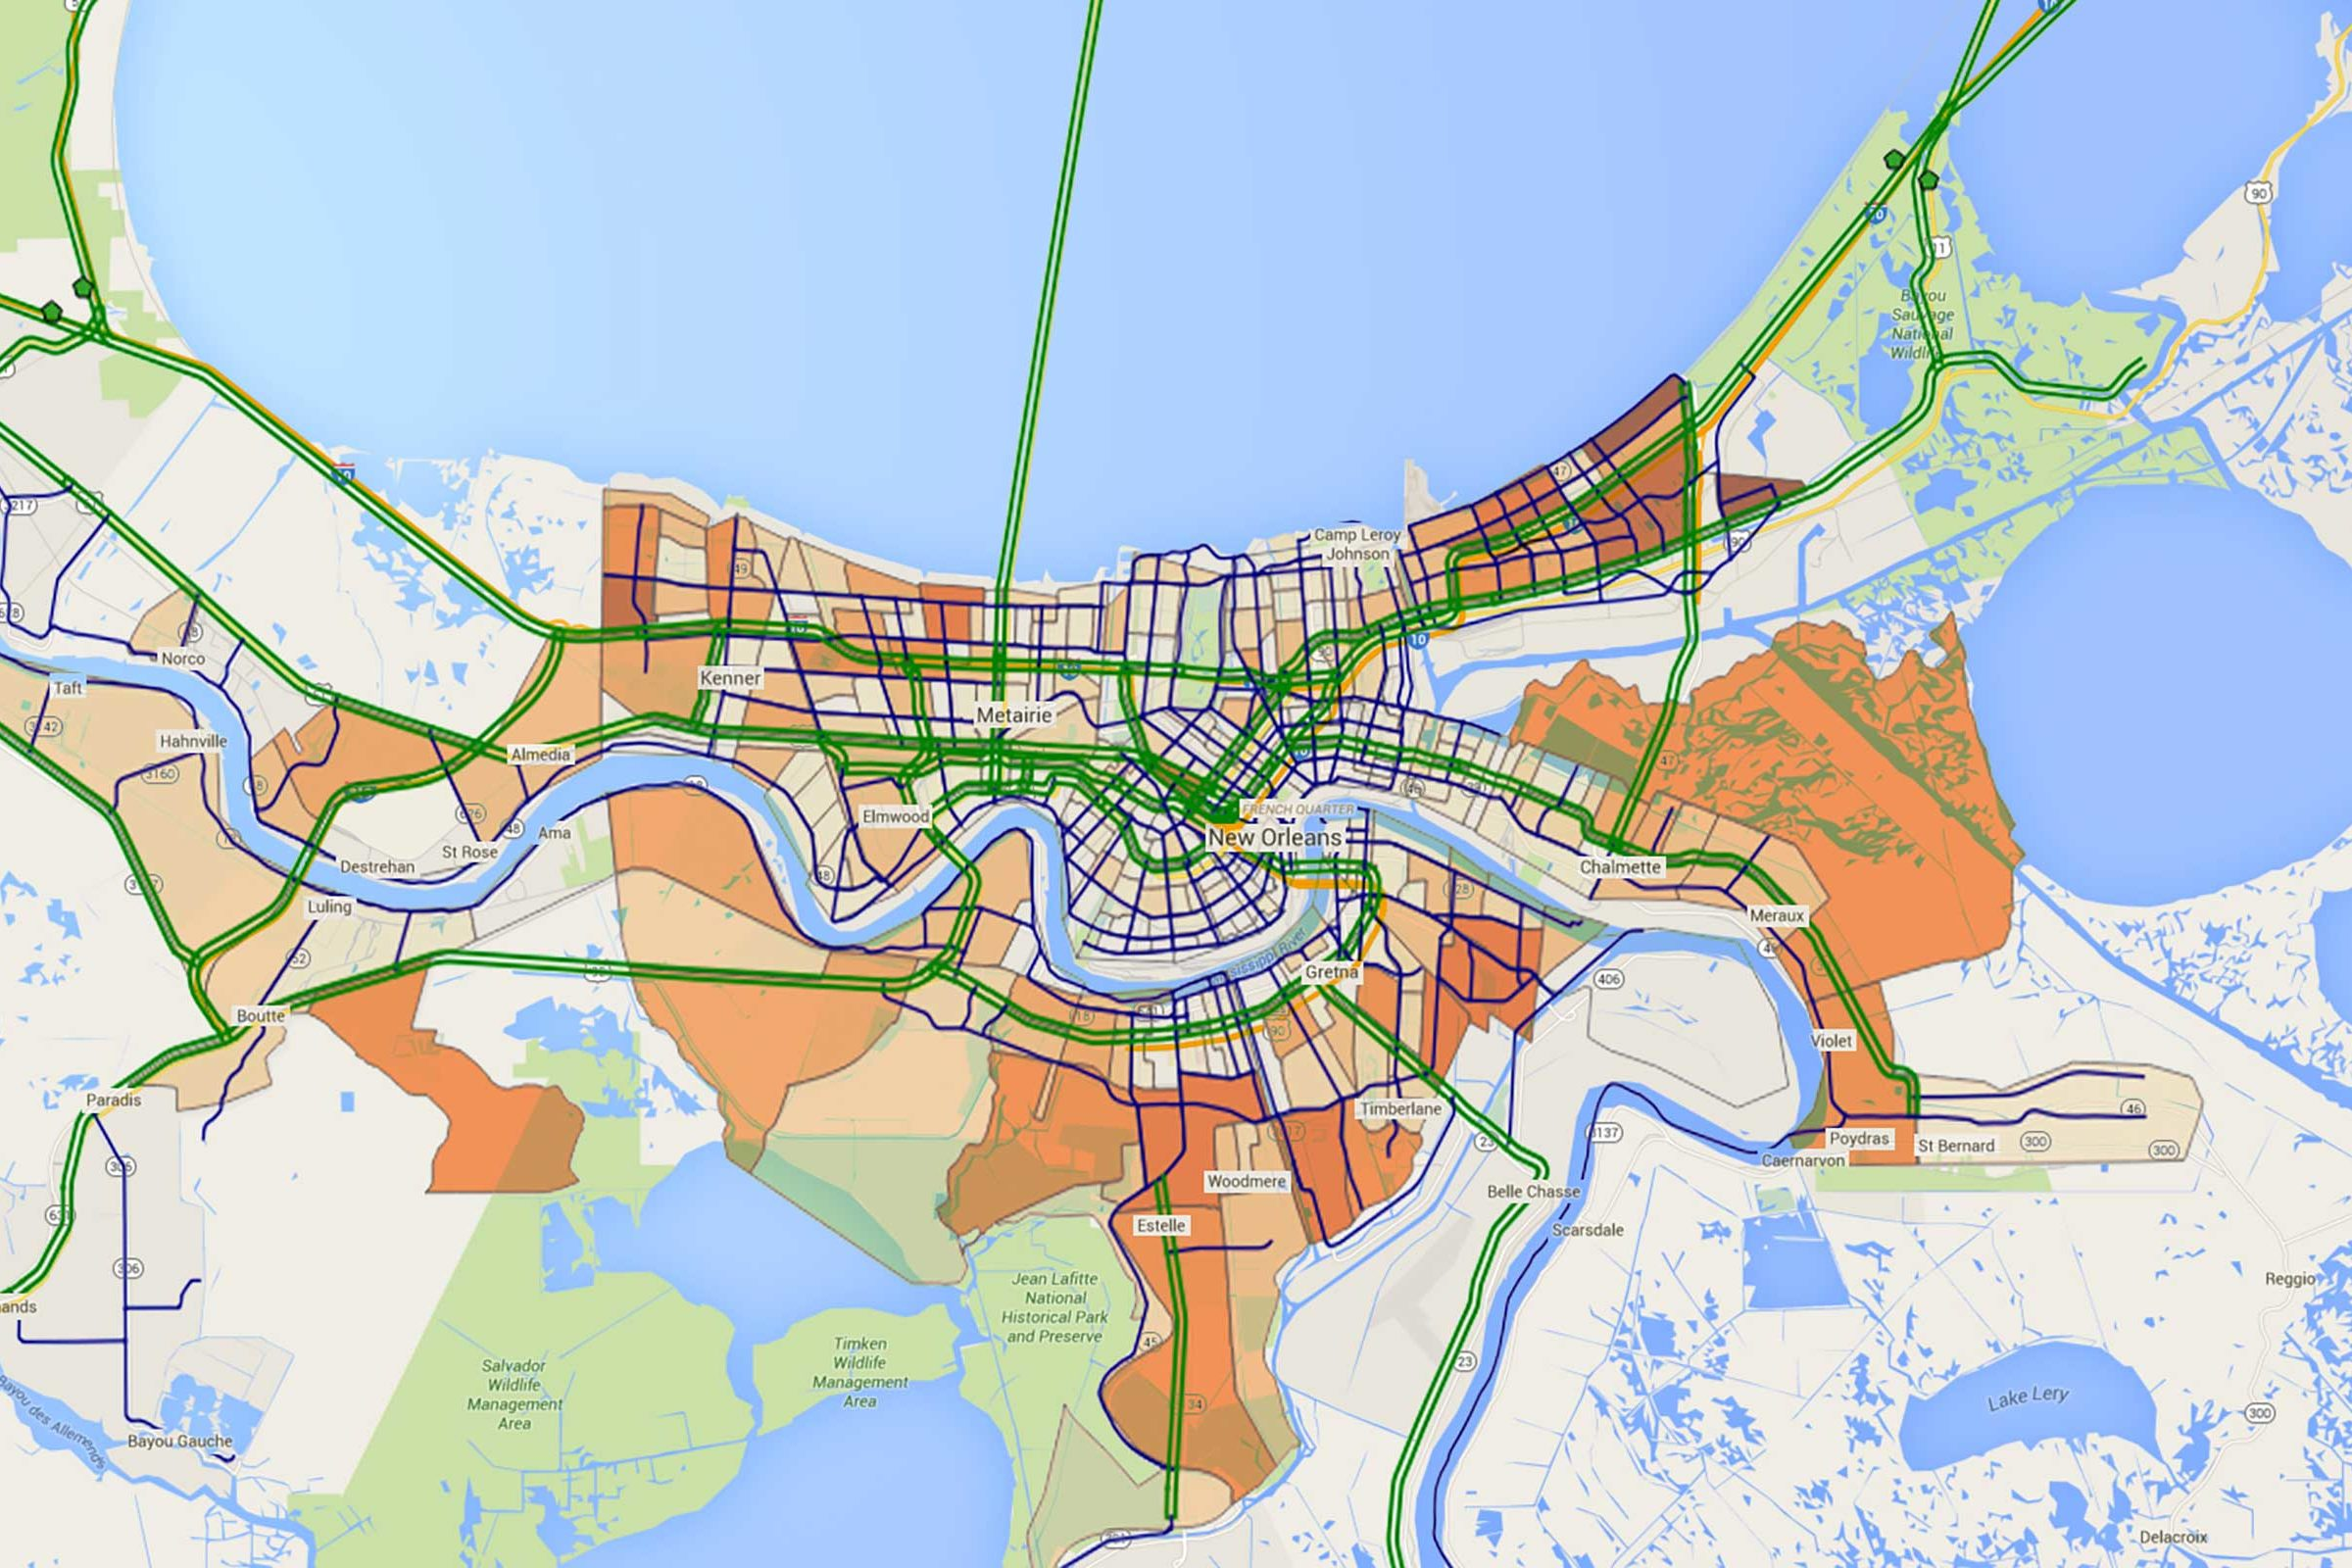 A map of New Orleans showing optimized evacuation plan